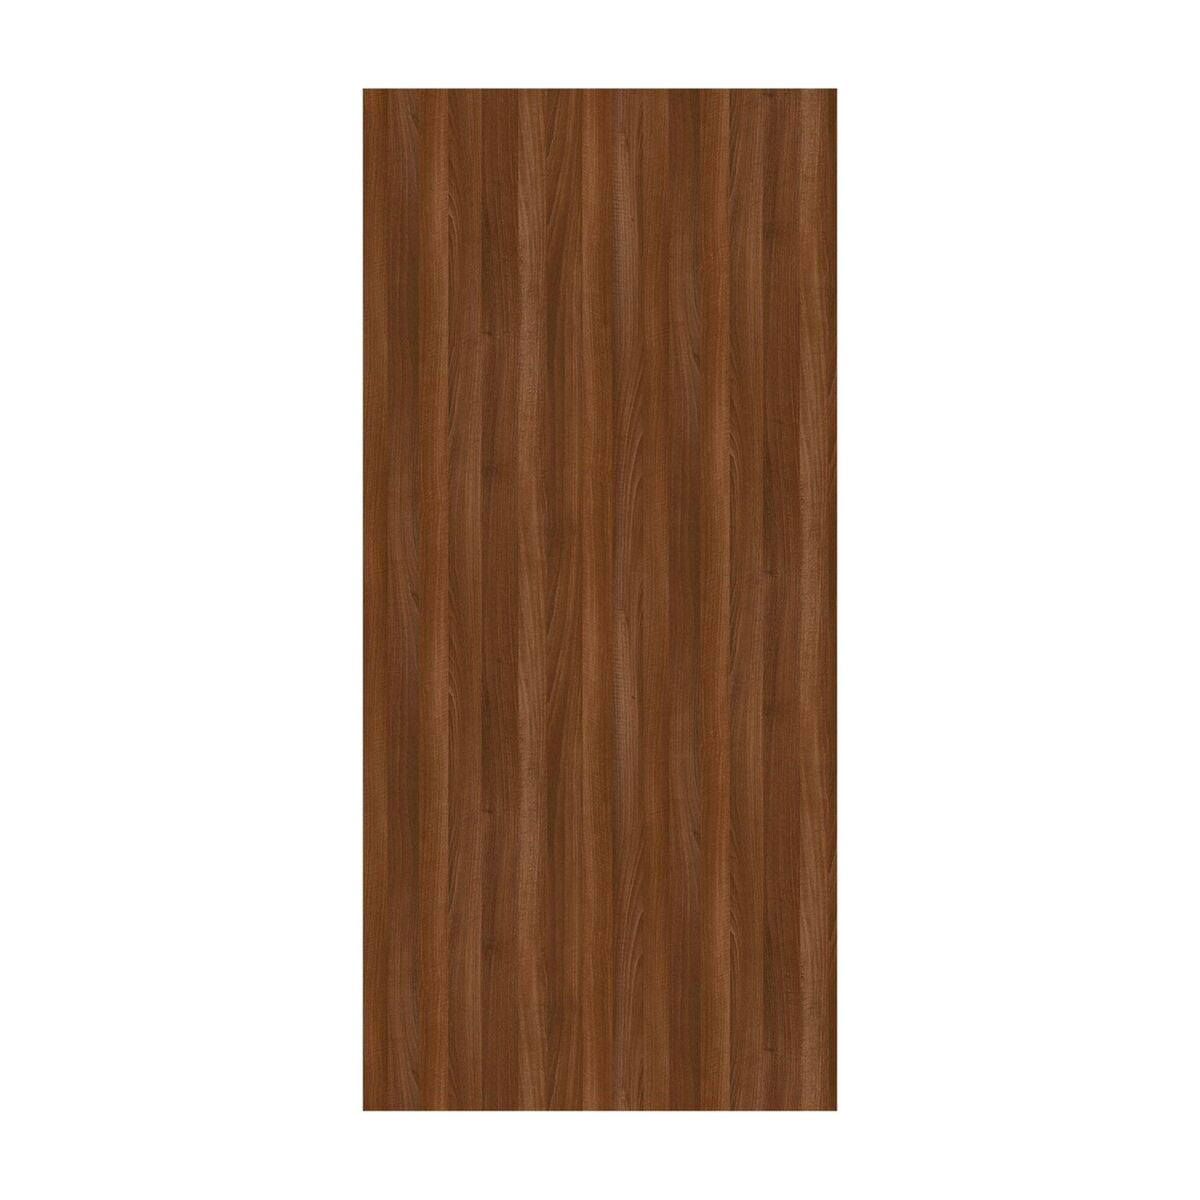 Tobacco Walnut End Panel